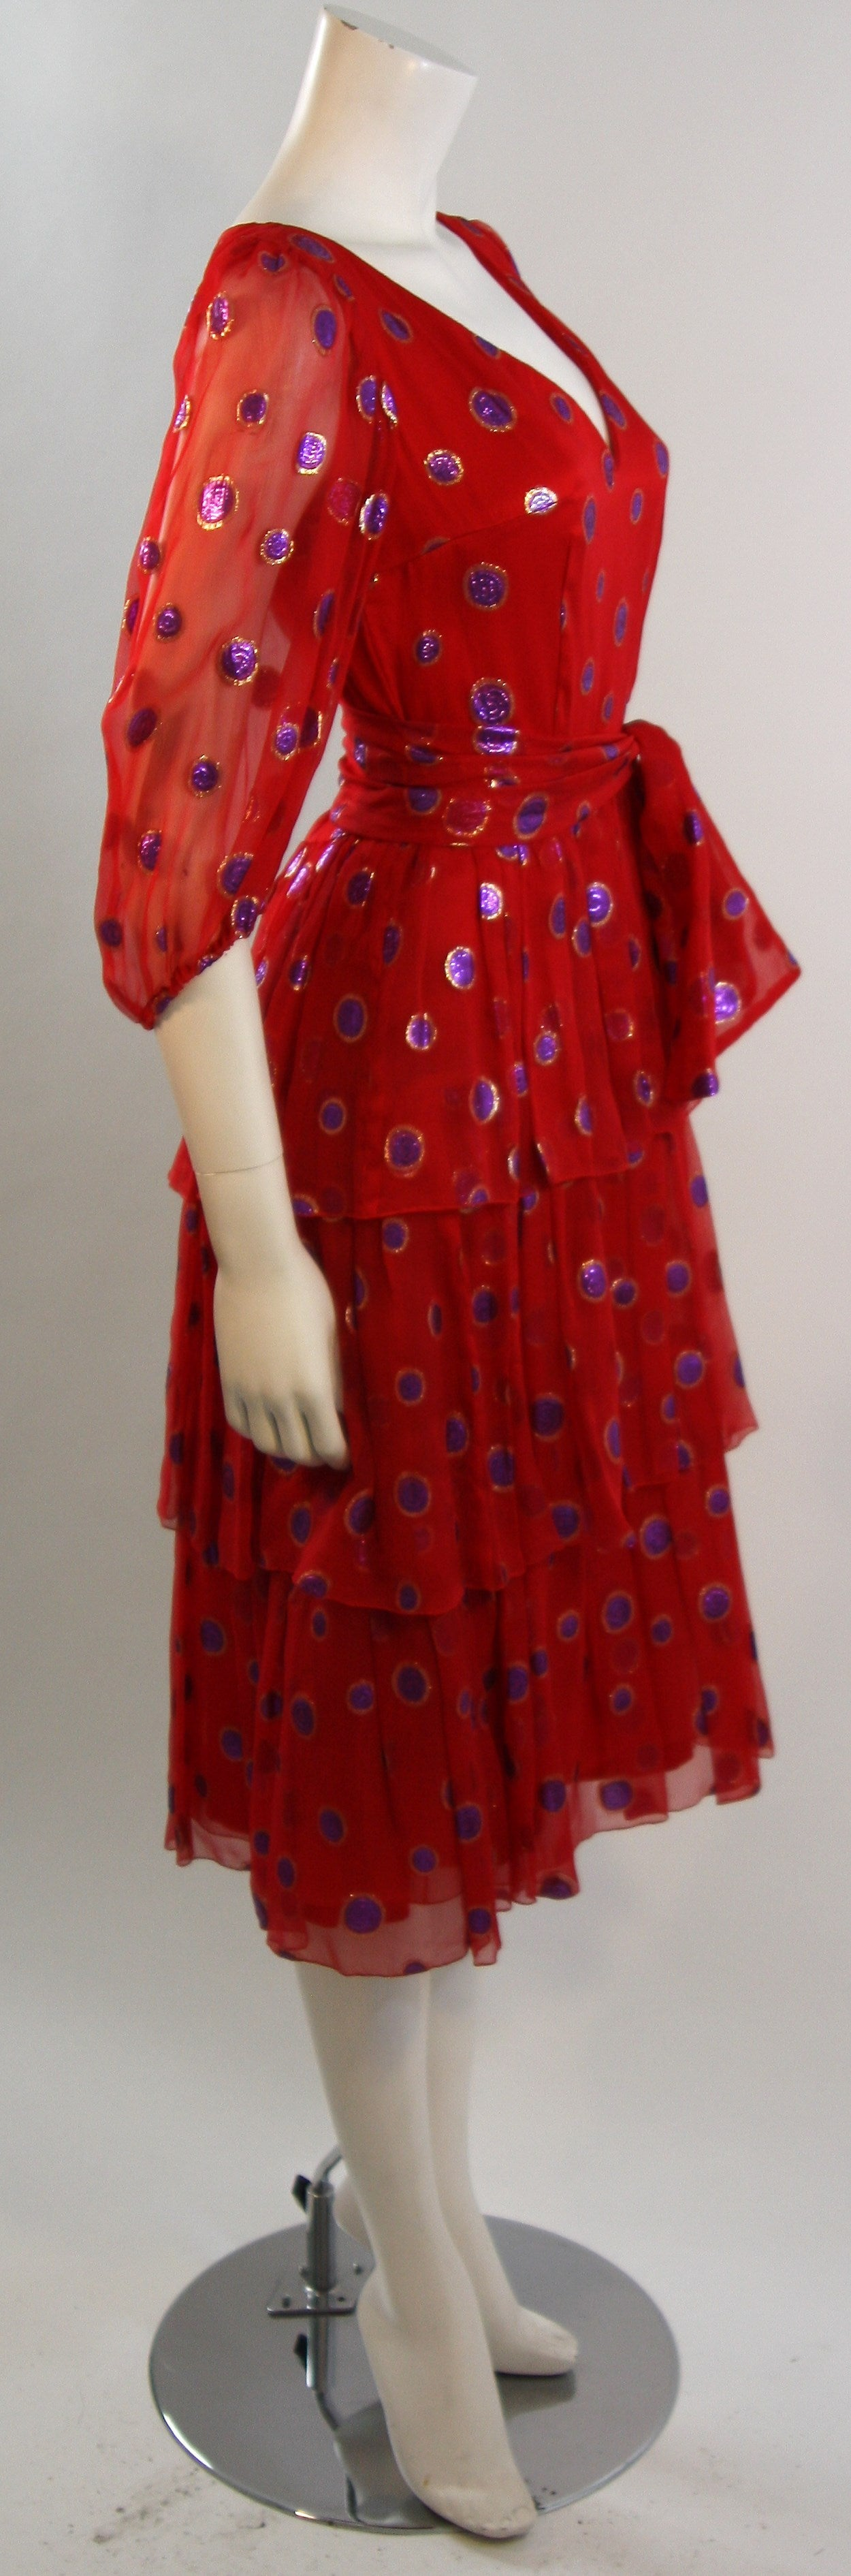 1970's Custom Made Red Silk Tired Dress with Purple Metallic Accents 7